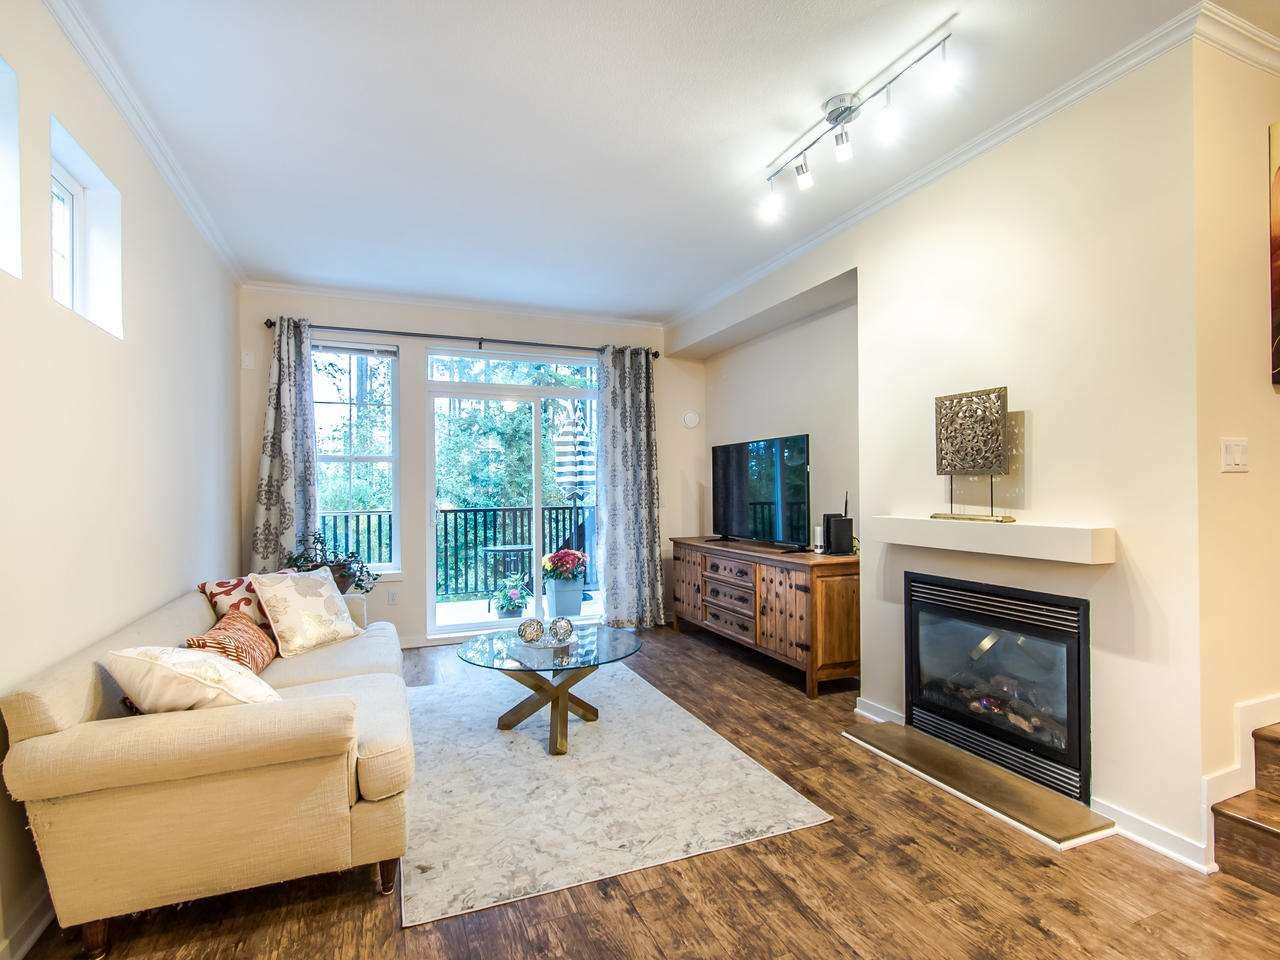 """Photo 3: Photos: 7 2200 PANORAMA Drive in Port Moody: Heritage Woods PM Townhouse for sale in """"THE QUEST"""" : MLS®# R2414883"""